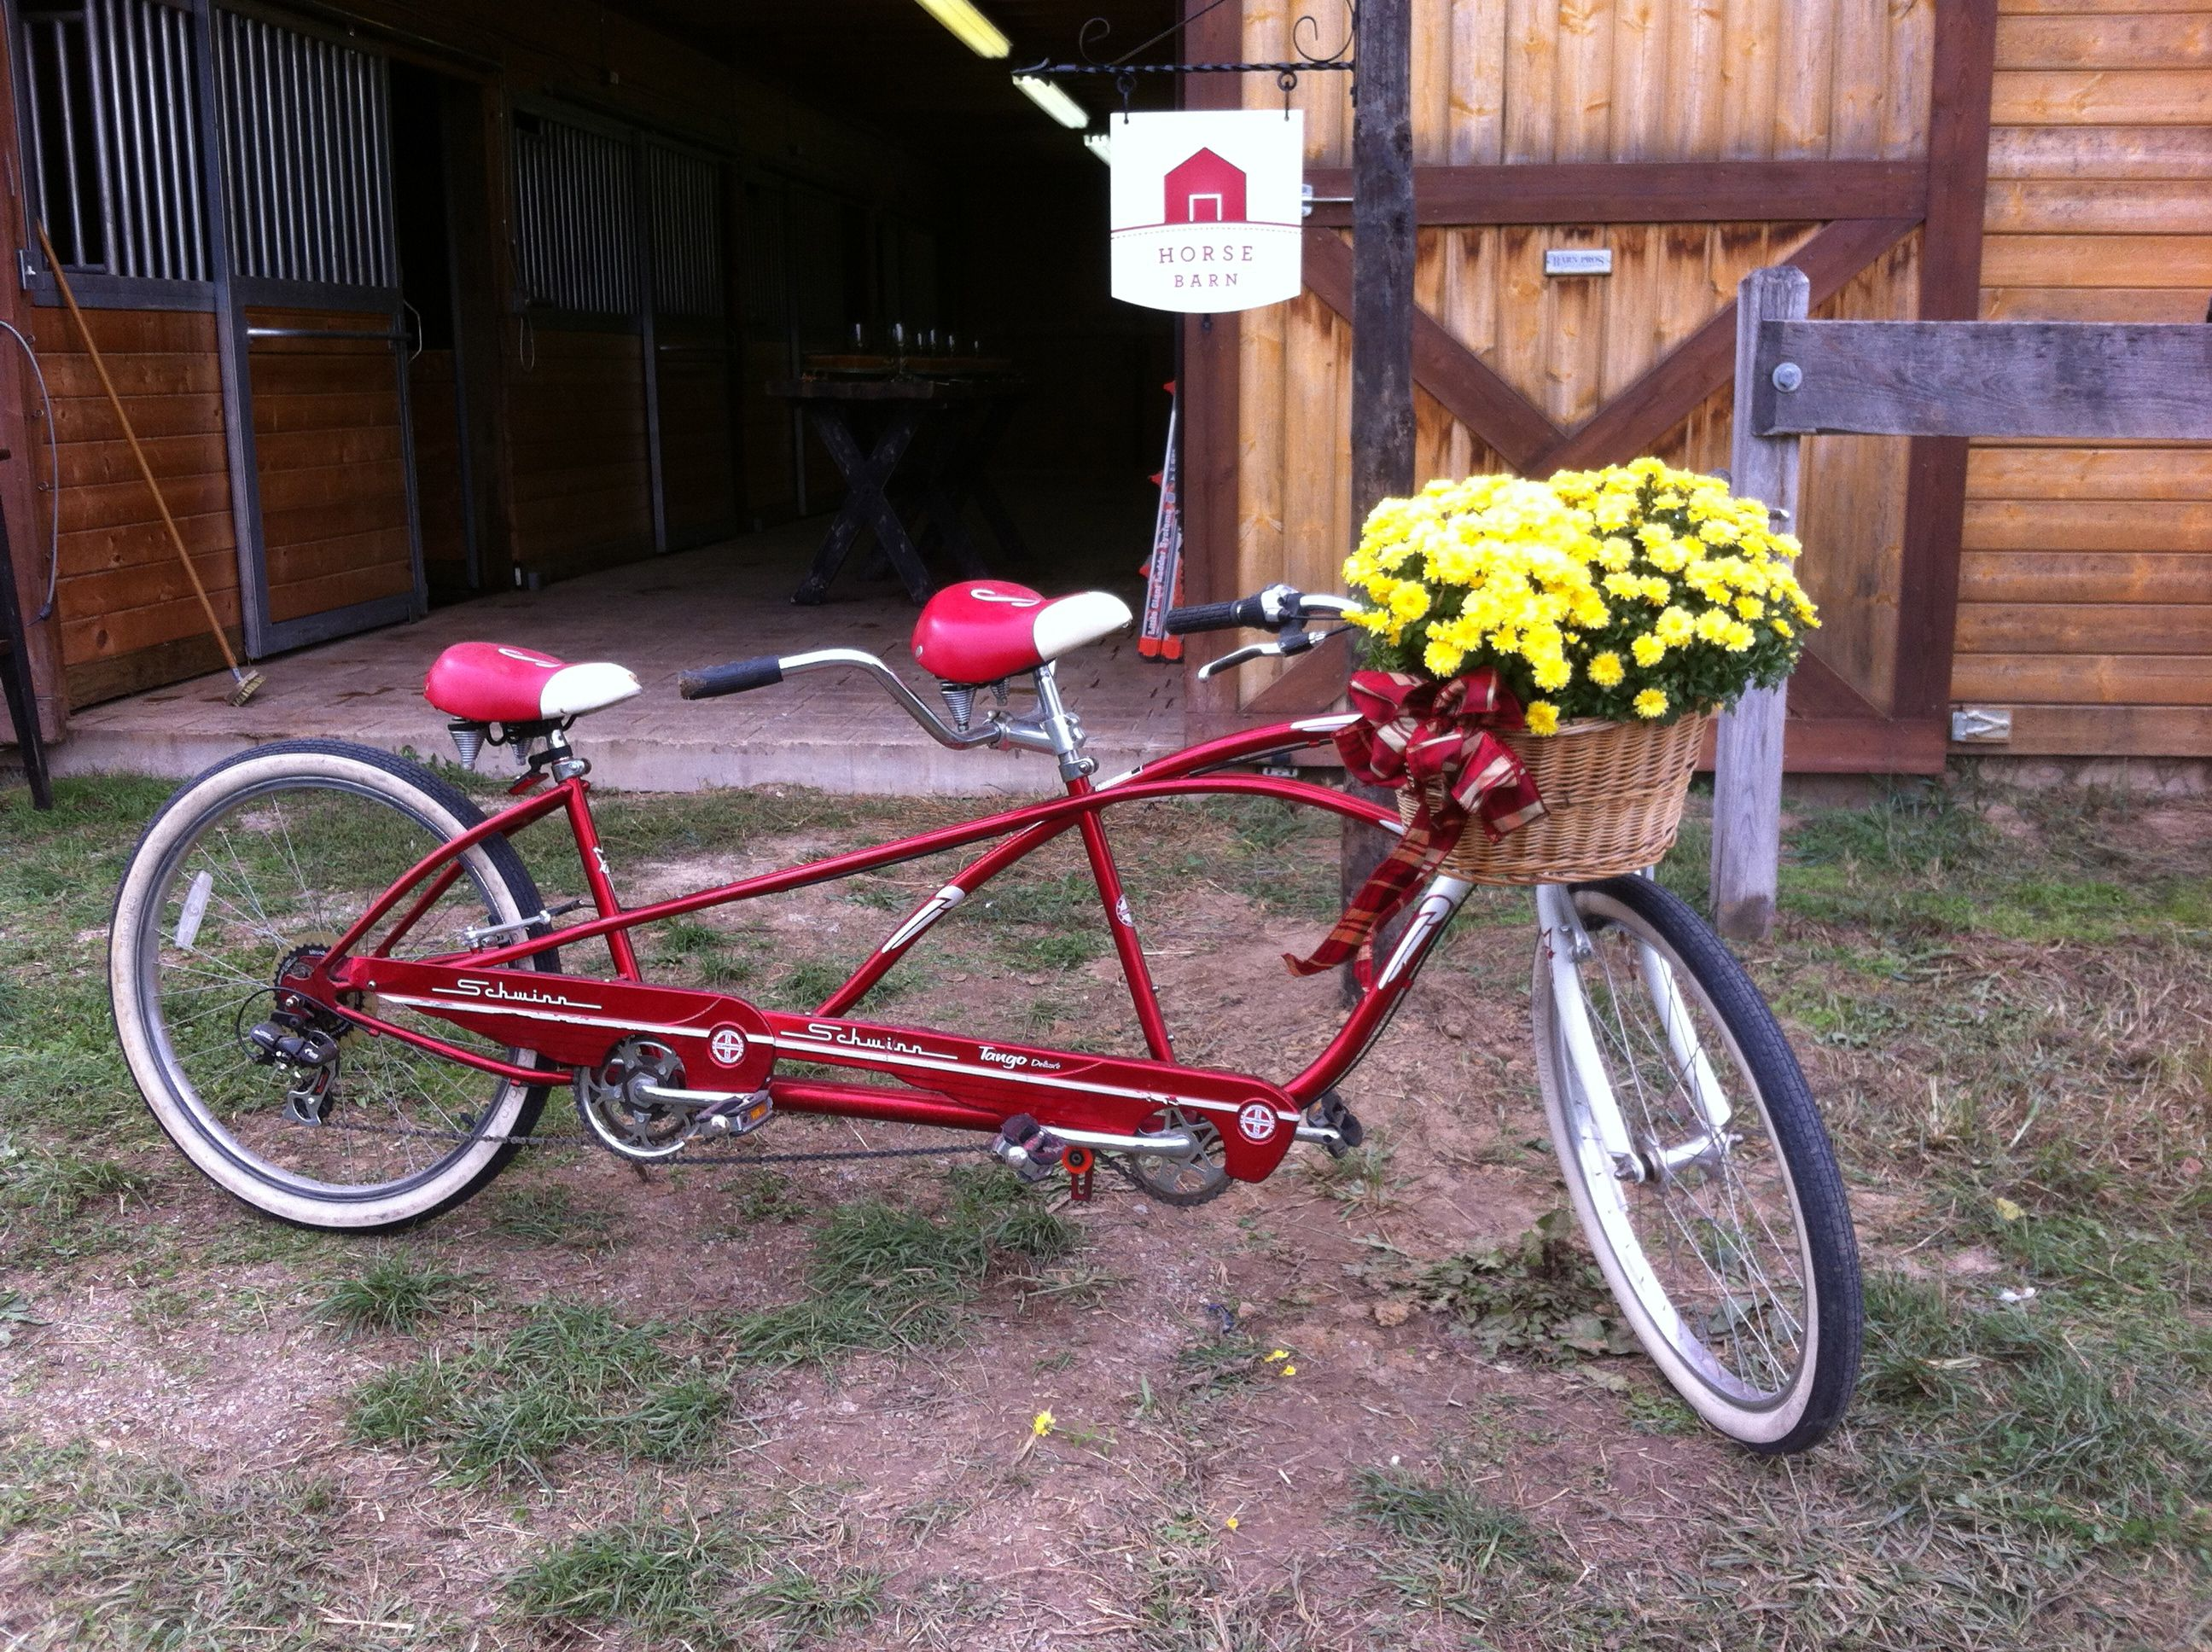 Bicycle built for the two of you!